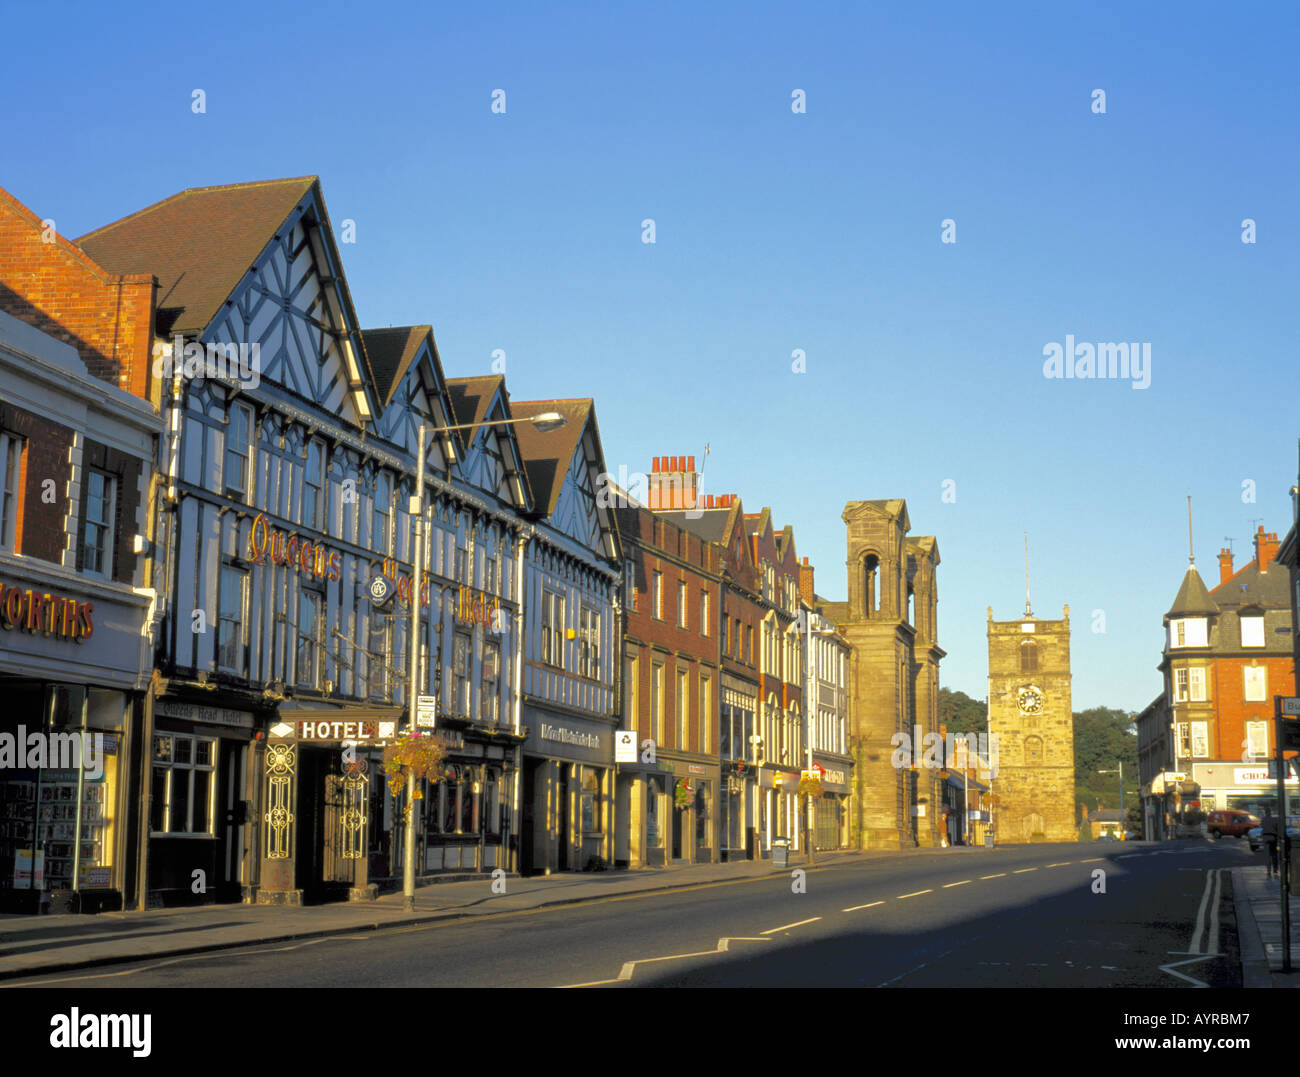 Queens Head Hotel with Town Hall and Clock Tower beyond, Morpeth, Northumberland, England, UK. - Stock Image